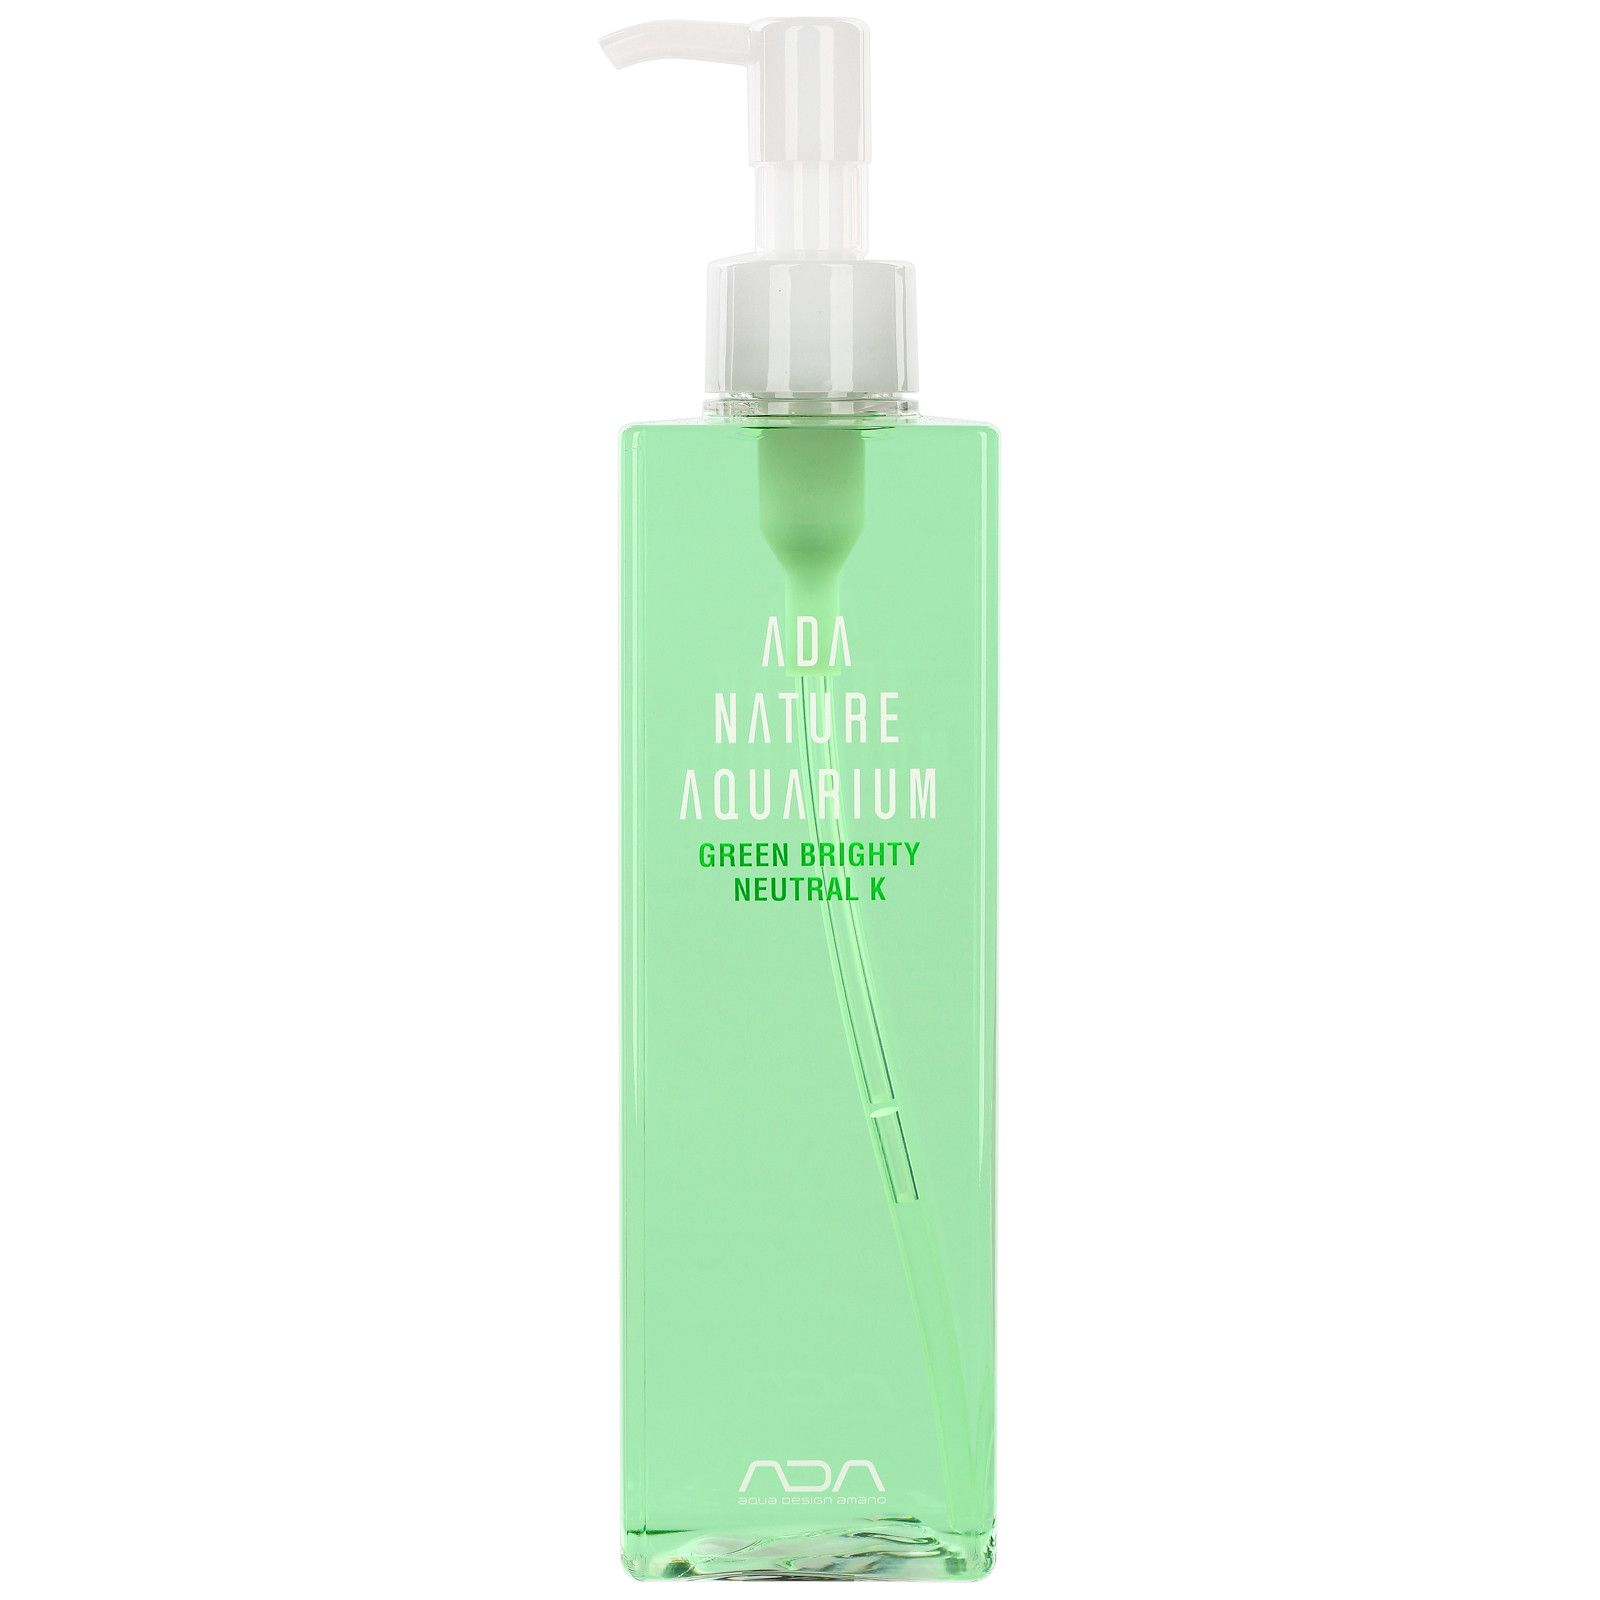 ADA - Green Brighty - Neutral K - 300 ml